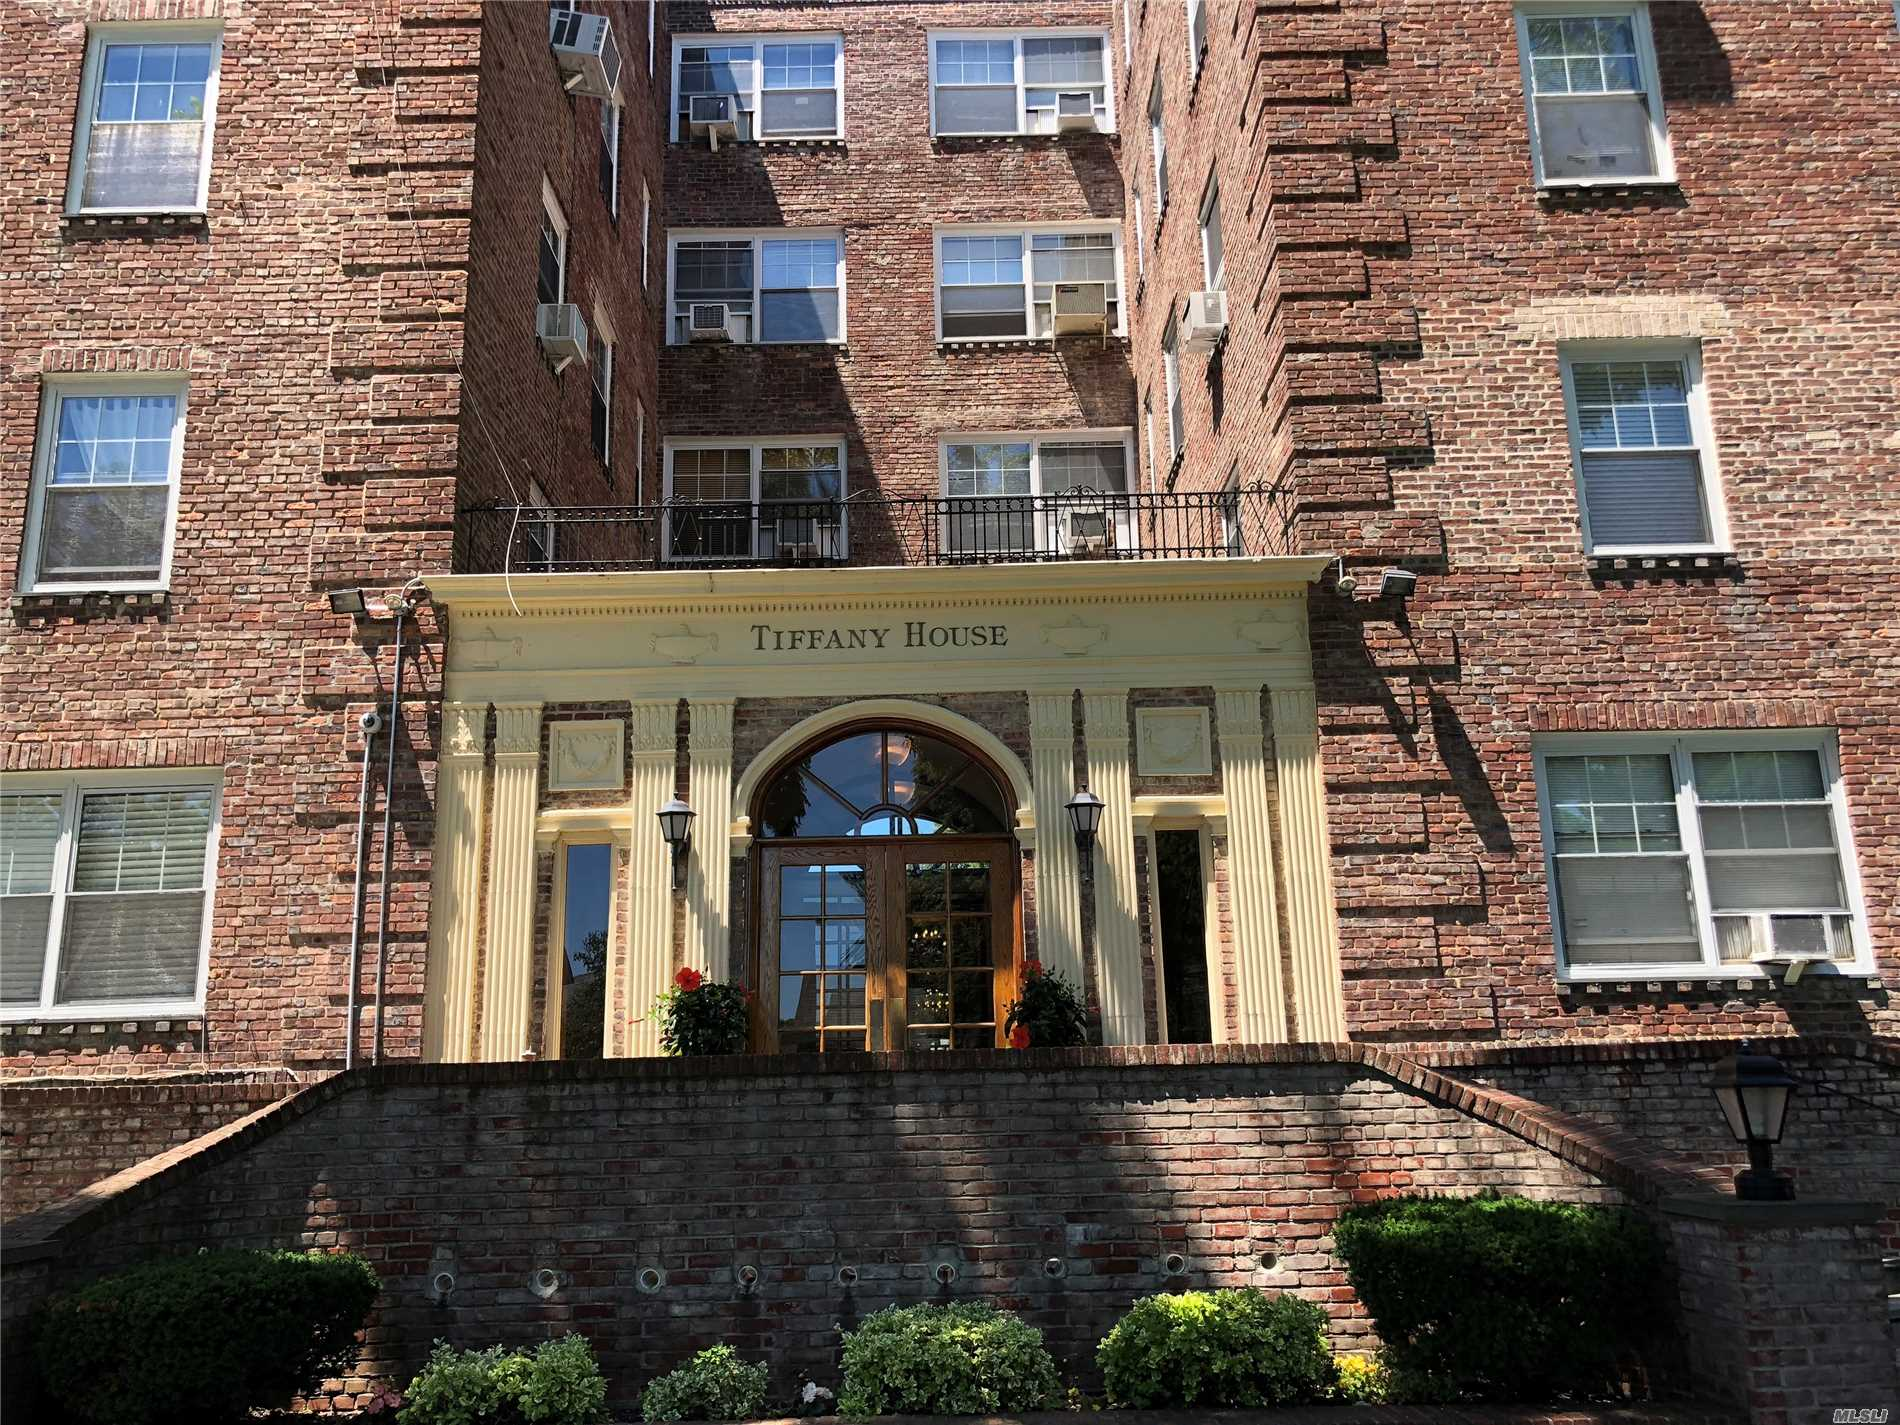 Large 1 Bedroom In Elevator Bldg. Totally Renovated Kosher Eat-In Kitchen And Bathroom, Large Living Room/Dining Room And Bedroom With Wood Floors. Washer/Dryer In Basement. Close To Railroad And Shopping.